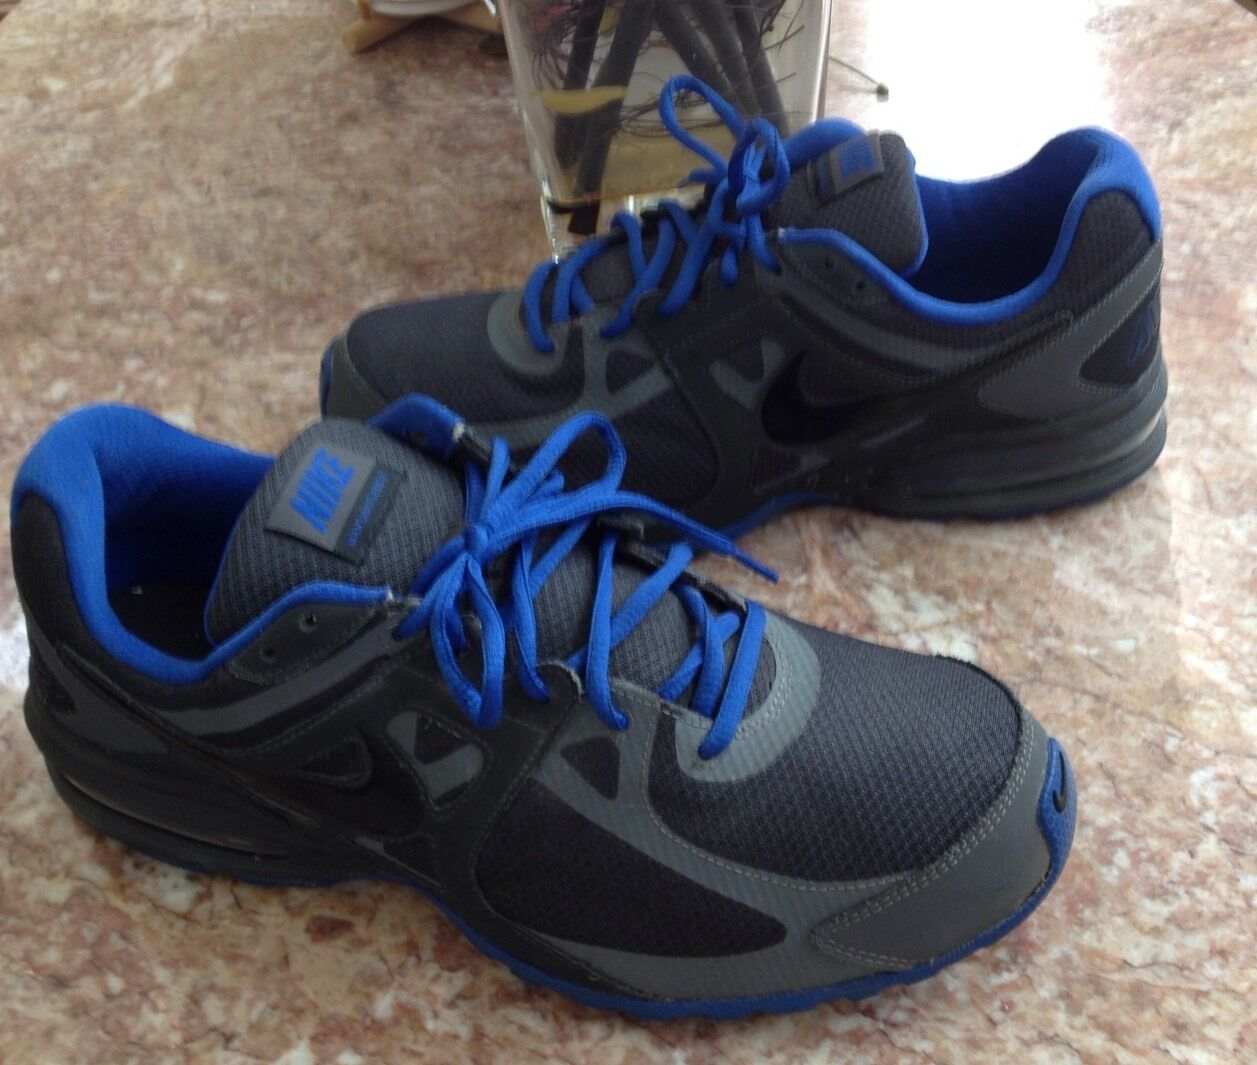 NIKE AIR MAX LIMITLESS 2 BLUE GREY ATHLETIC MEN'S SHOES SIZE 12 525759-005 EUC best-selling model of the brand